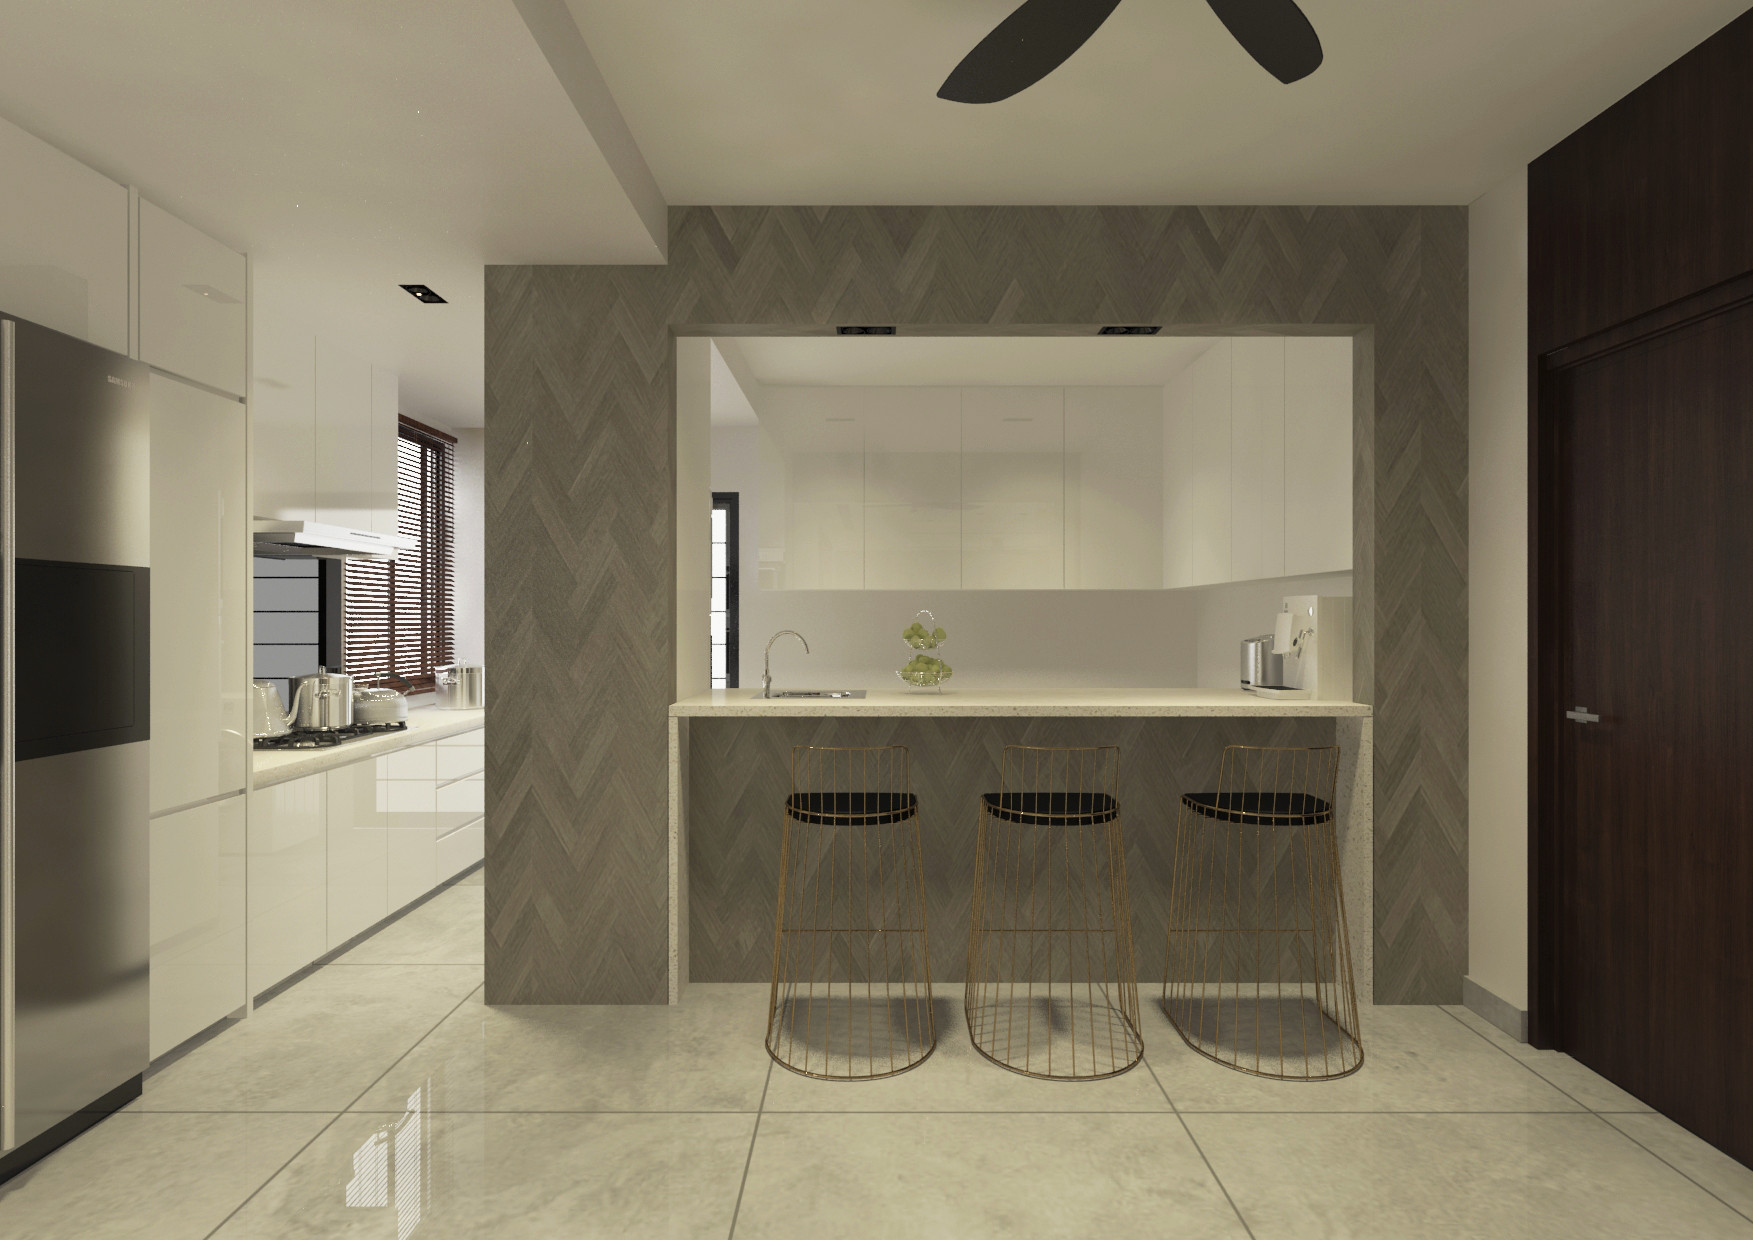 Dry & Wet Kitchen + Bar Counter Design